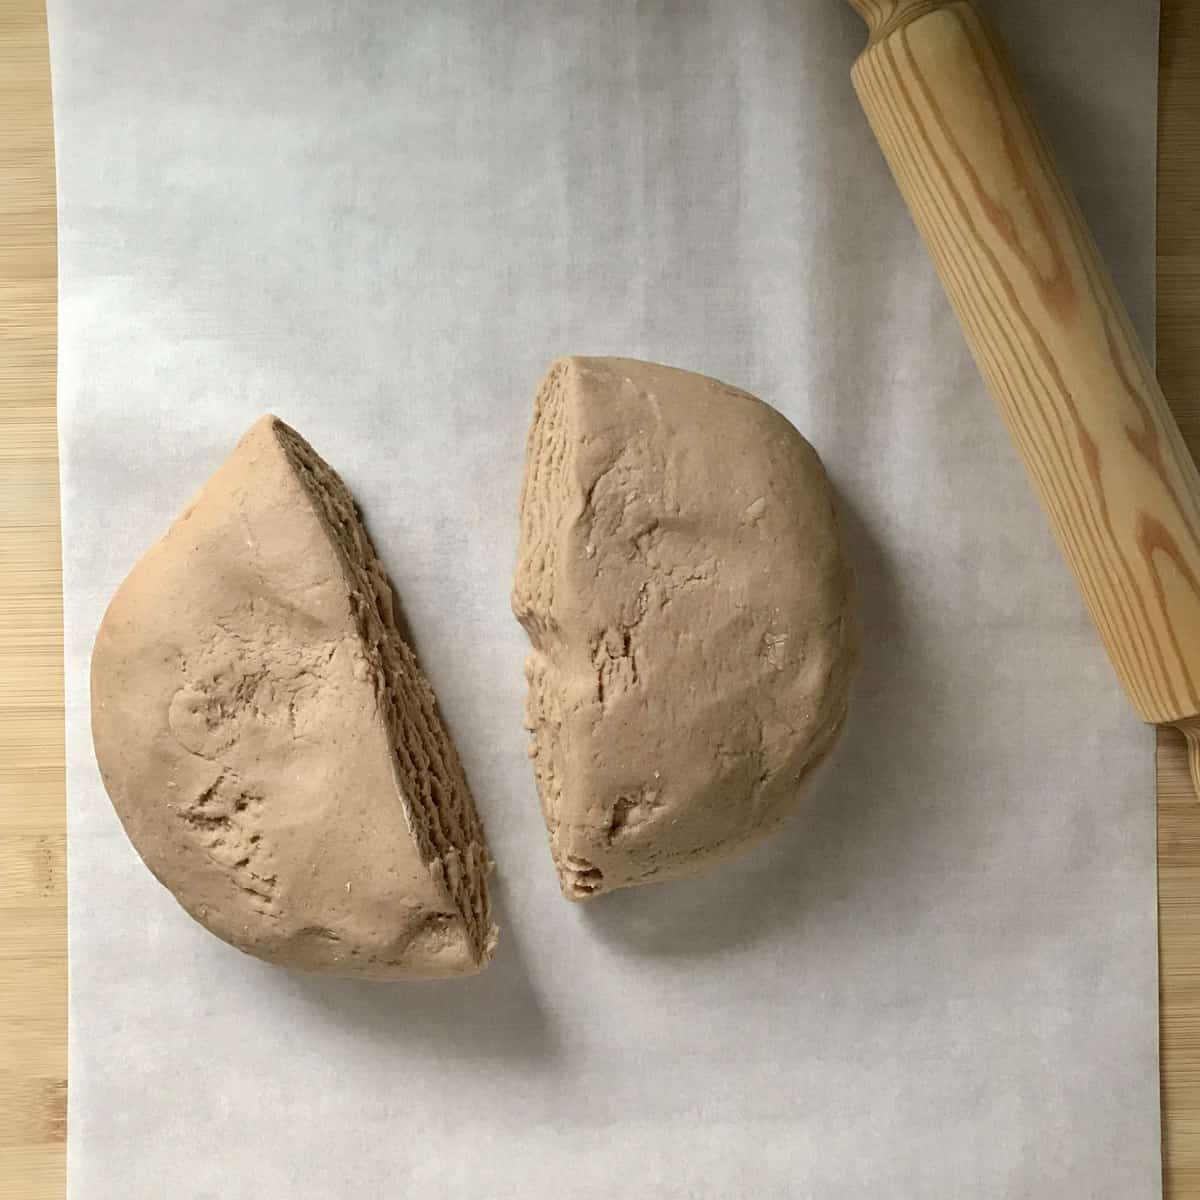 Biscotti dough on parchment paper.